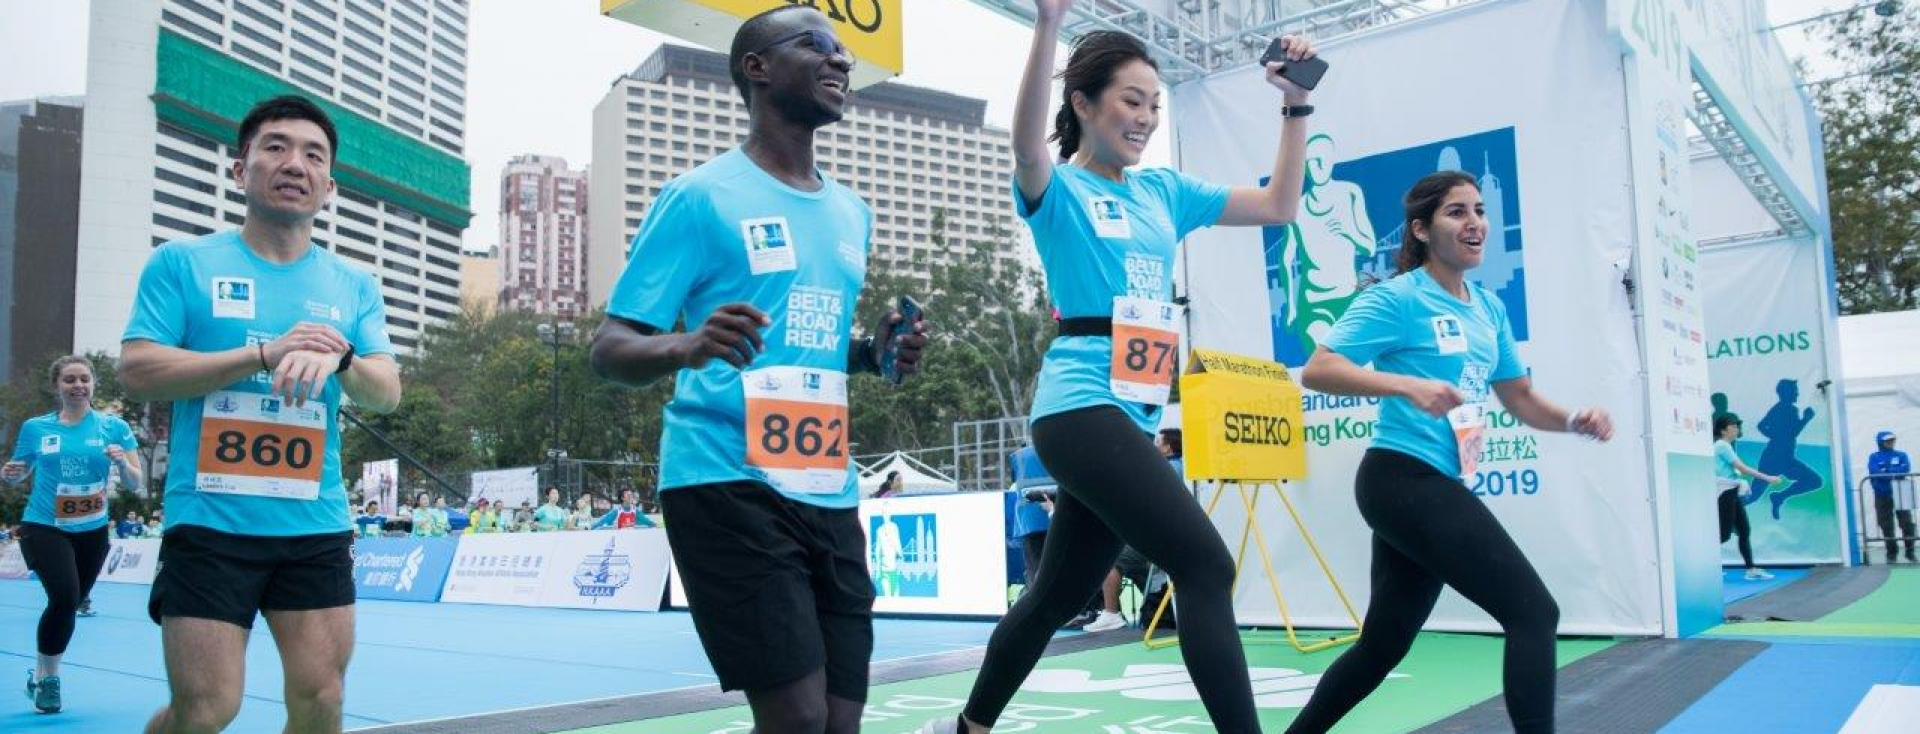 Behind the scenes at Hong Kong Marathon 3